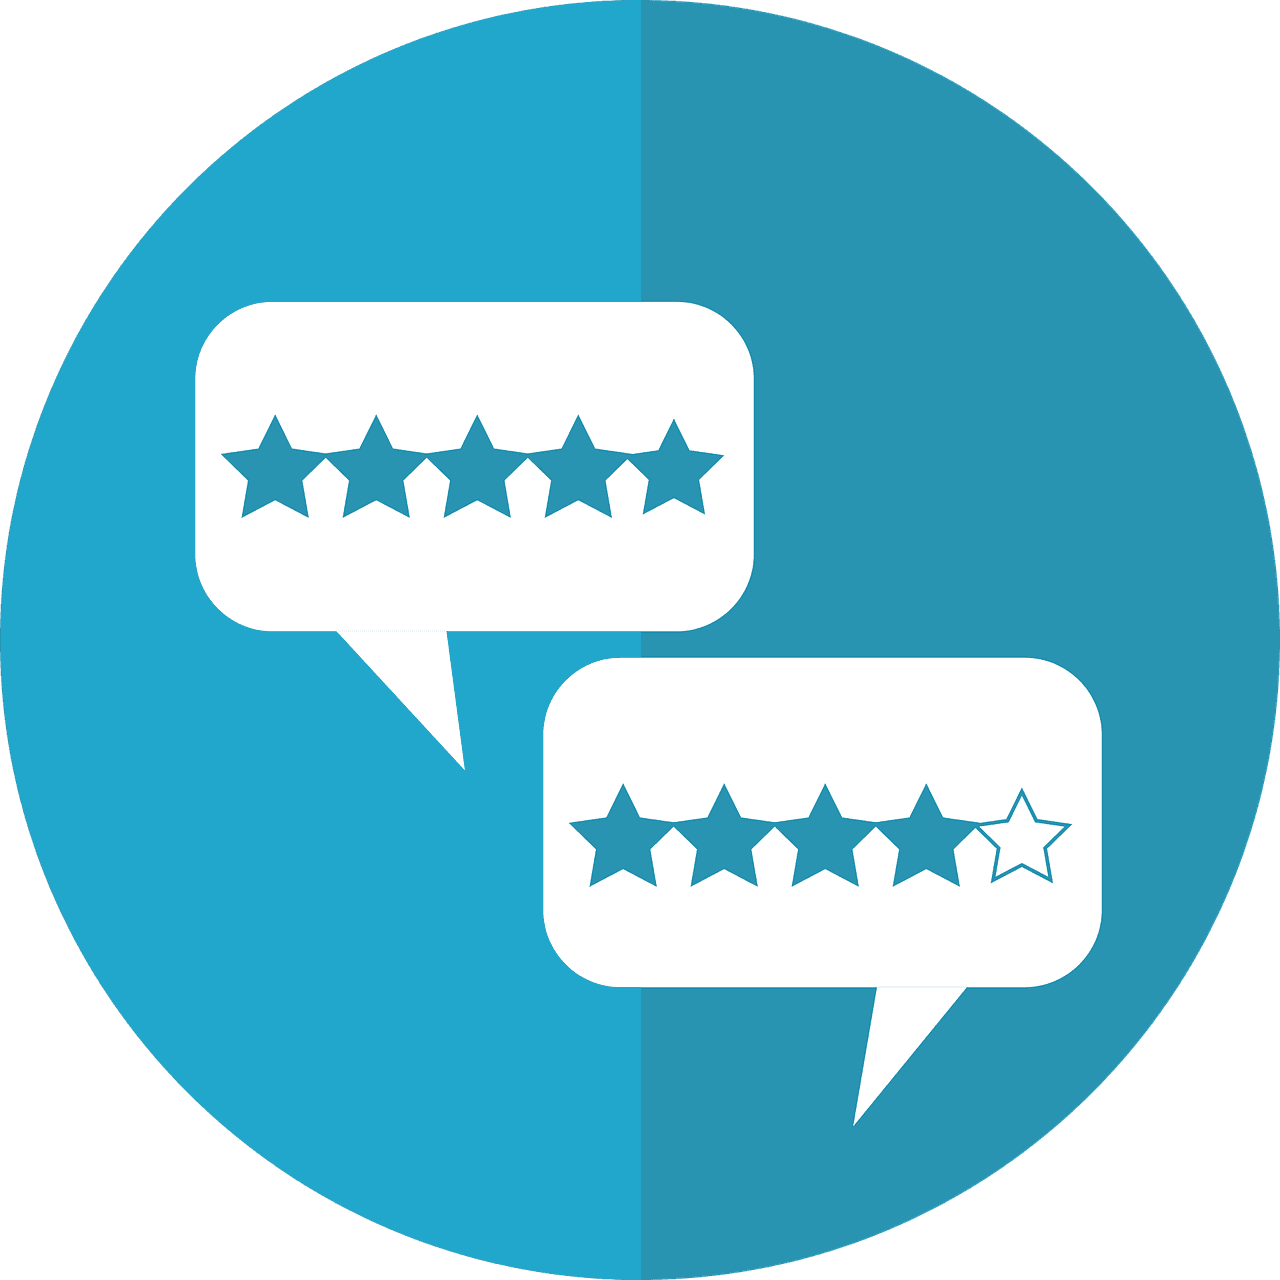 yes mobile phone review star rating symbols